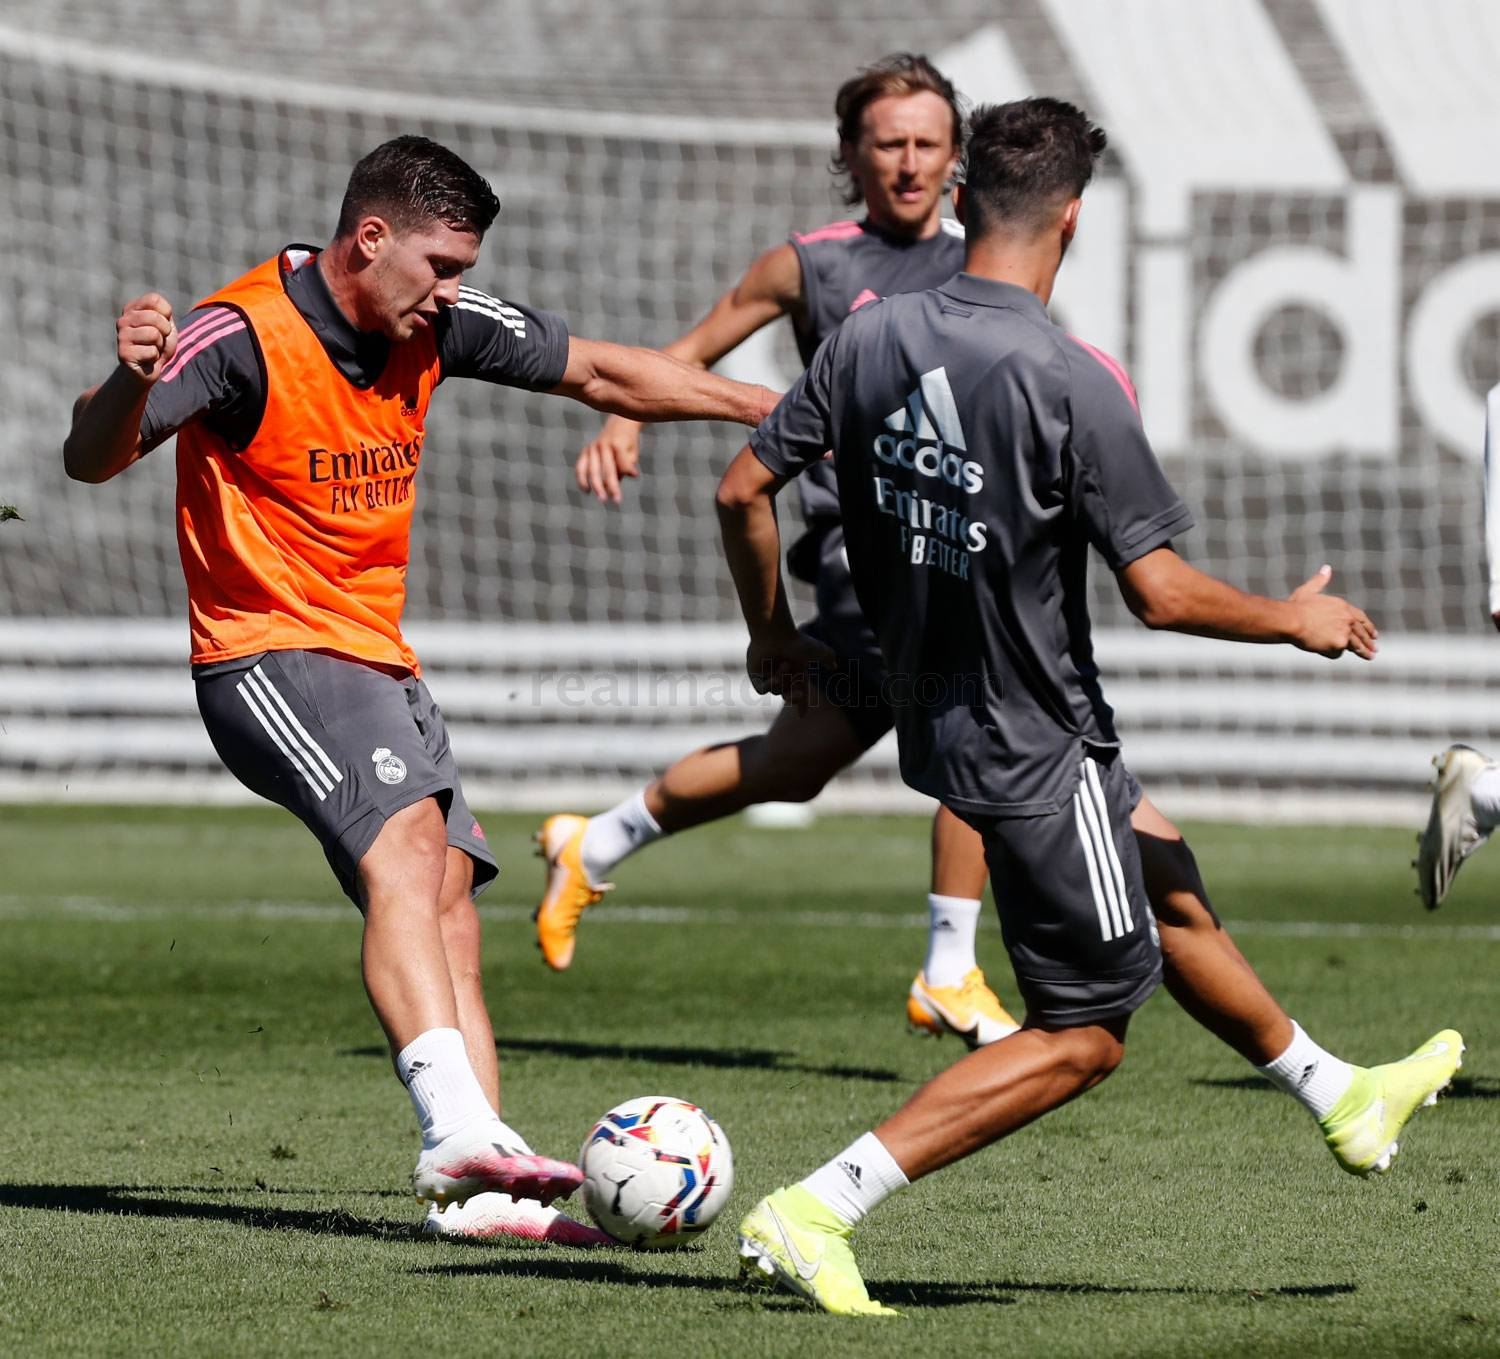 Real Madrid - Entrenamiento del Real Madrid  - 09-09-2020